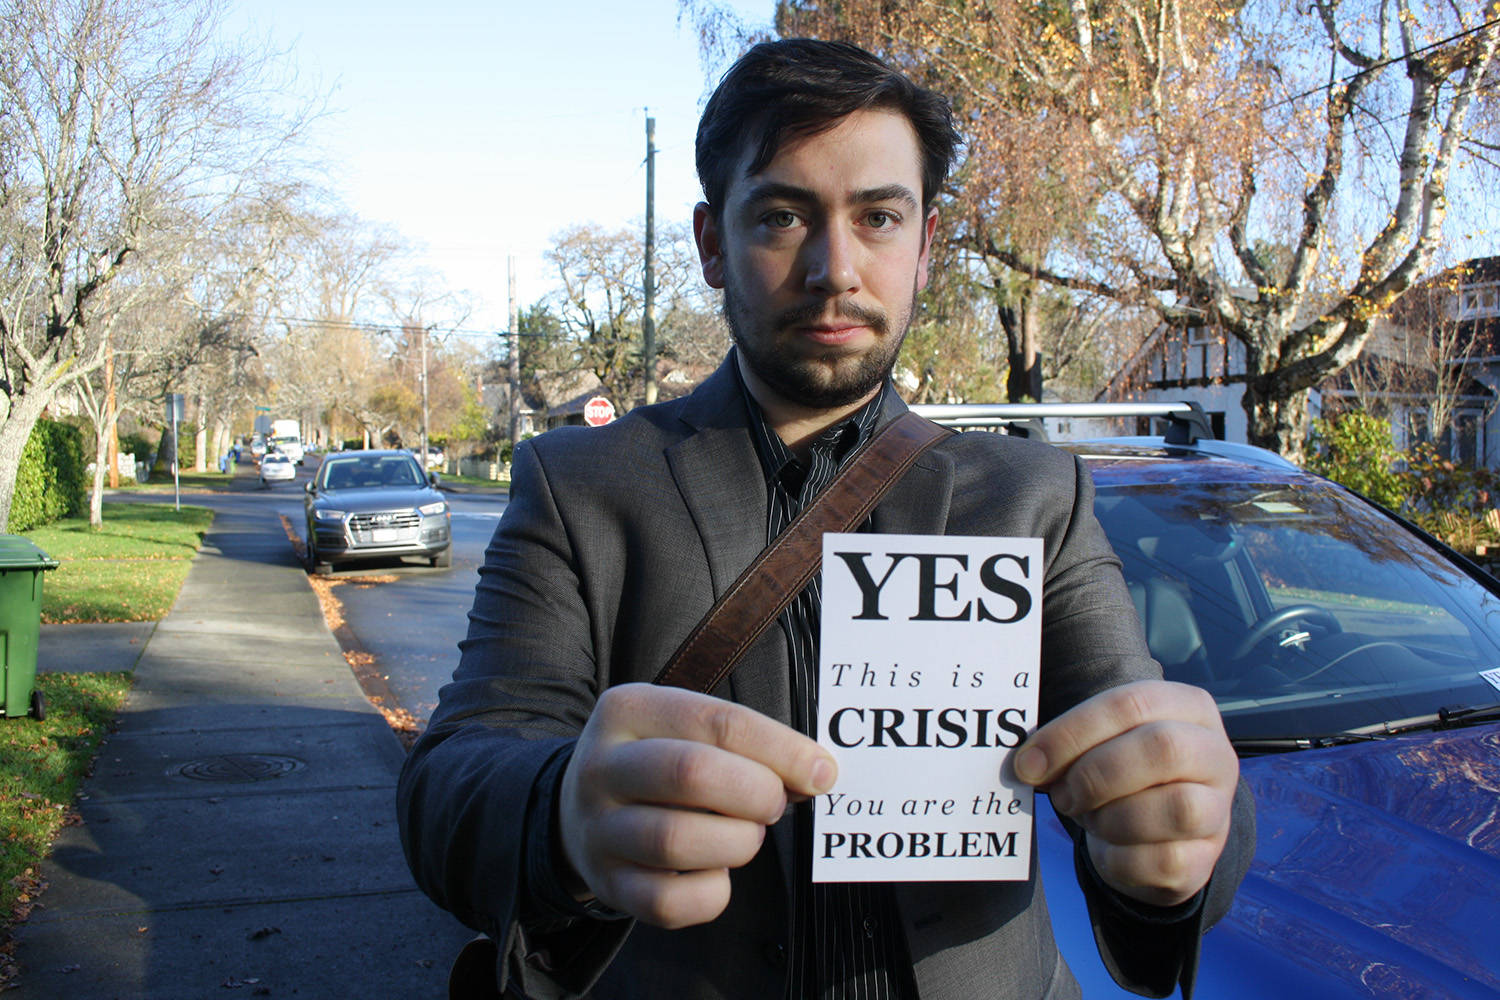 Meet the Victoria environmentalist behind those controversial car-shaming handbills